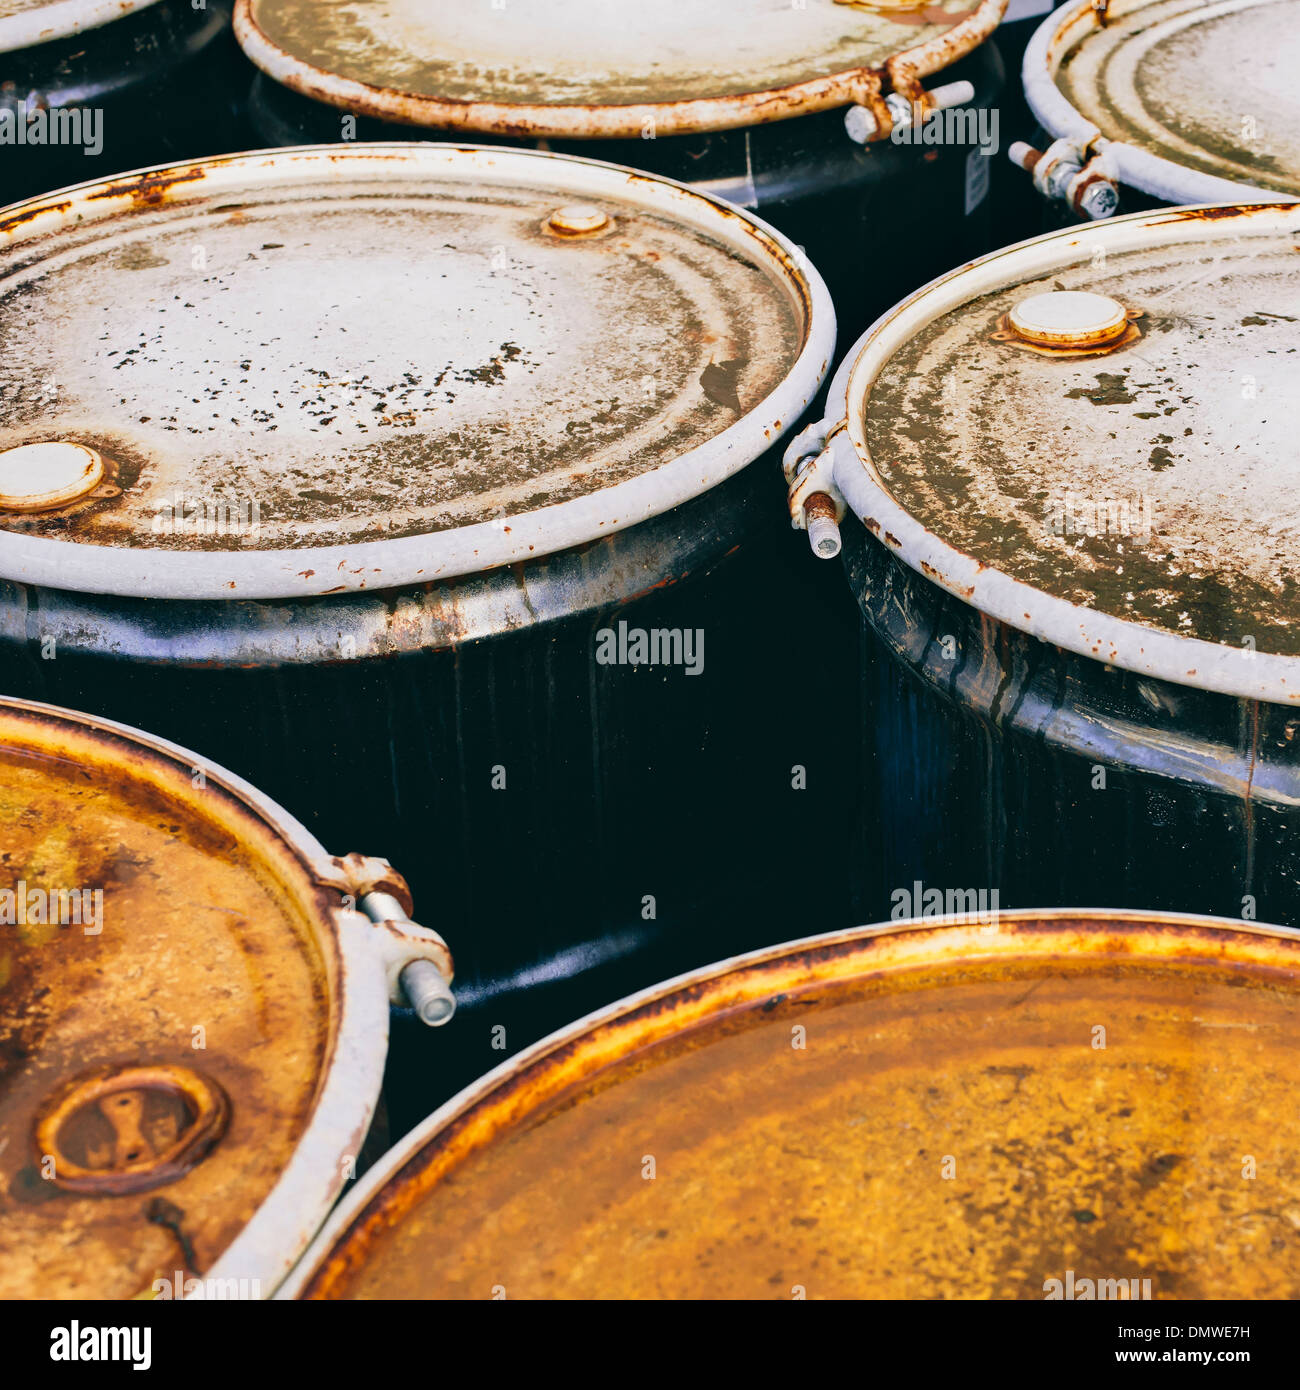 A group of rusted corroded barrels of chemical or petroleum products. - Stock Image